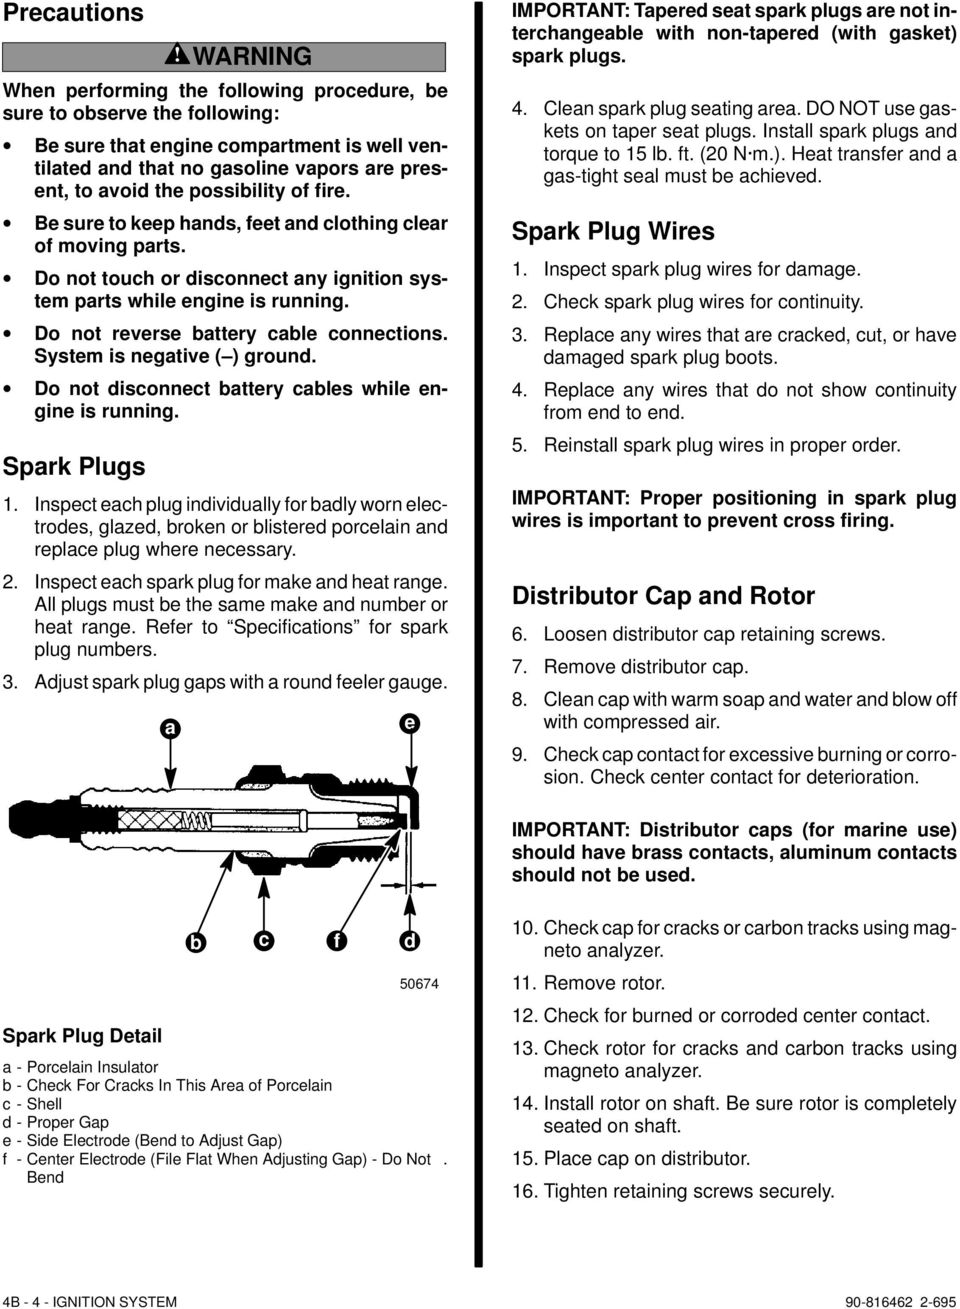 ELECTRICAL SYSTEMS IGNITION SYSTEM - PDF